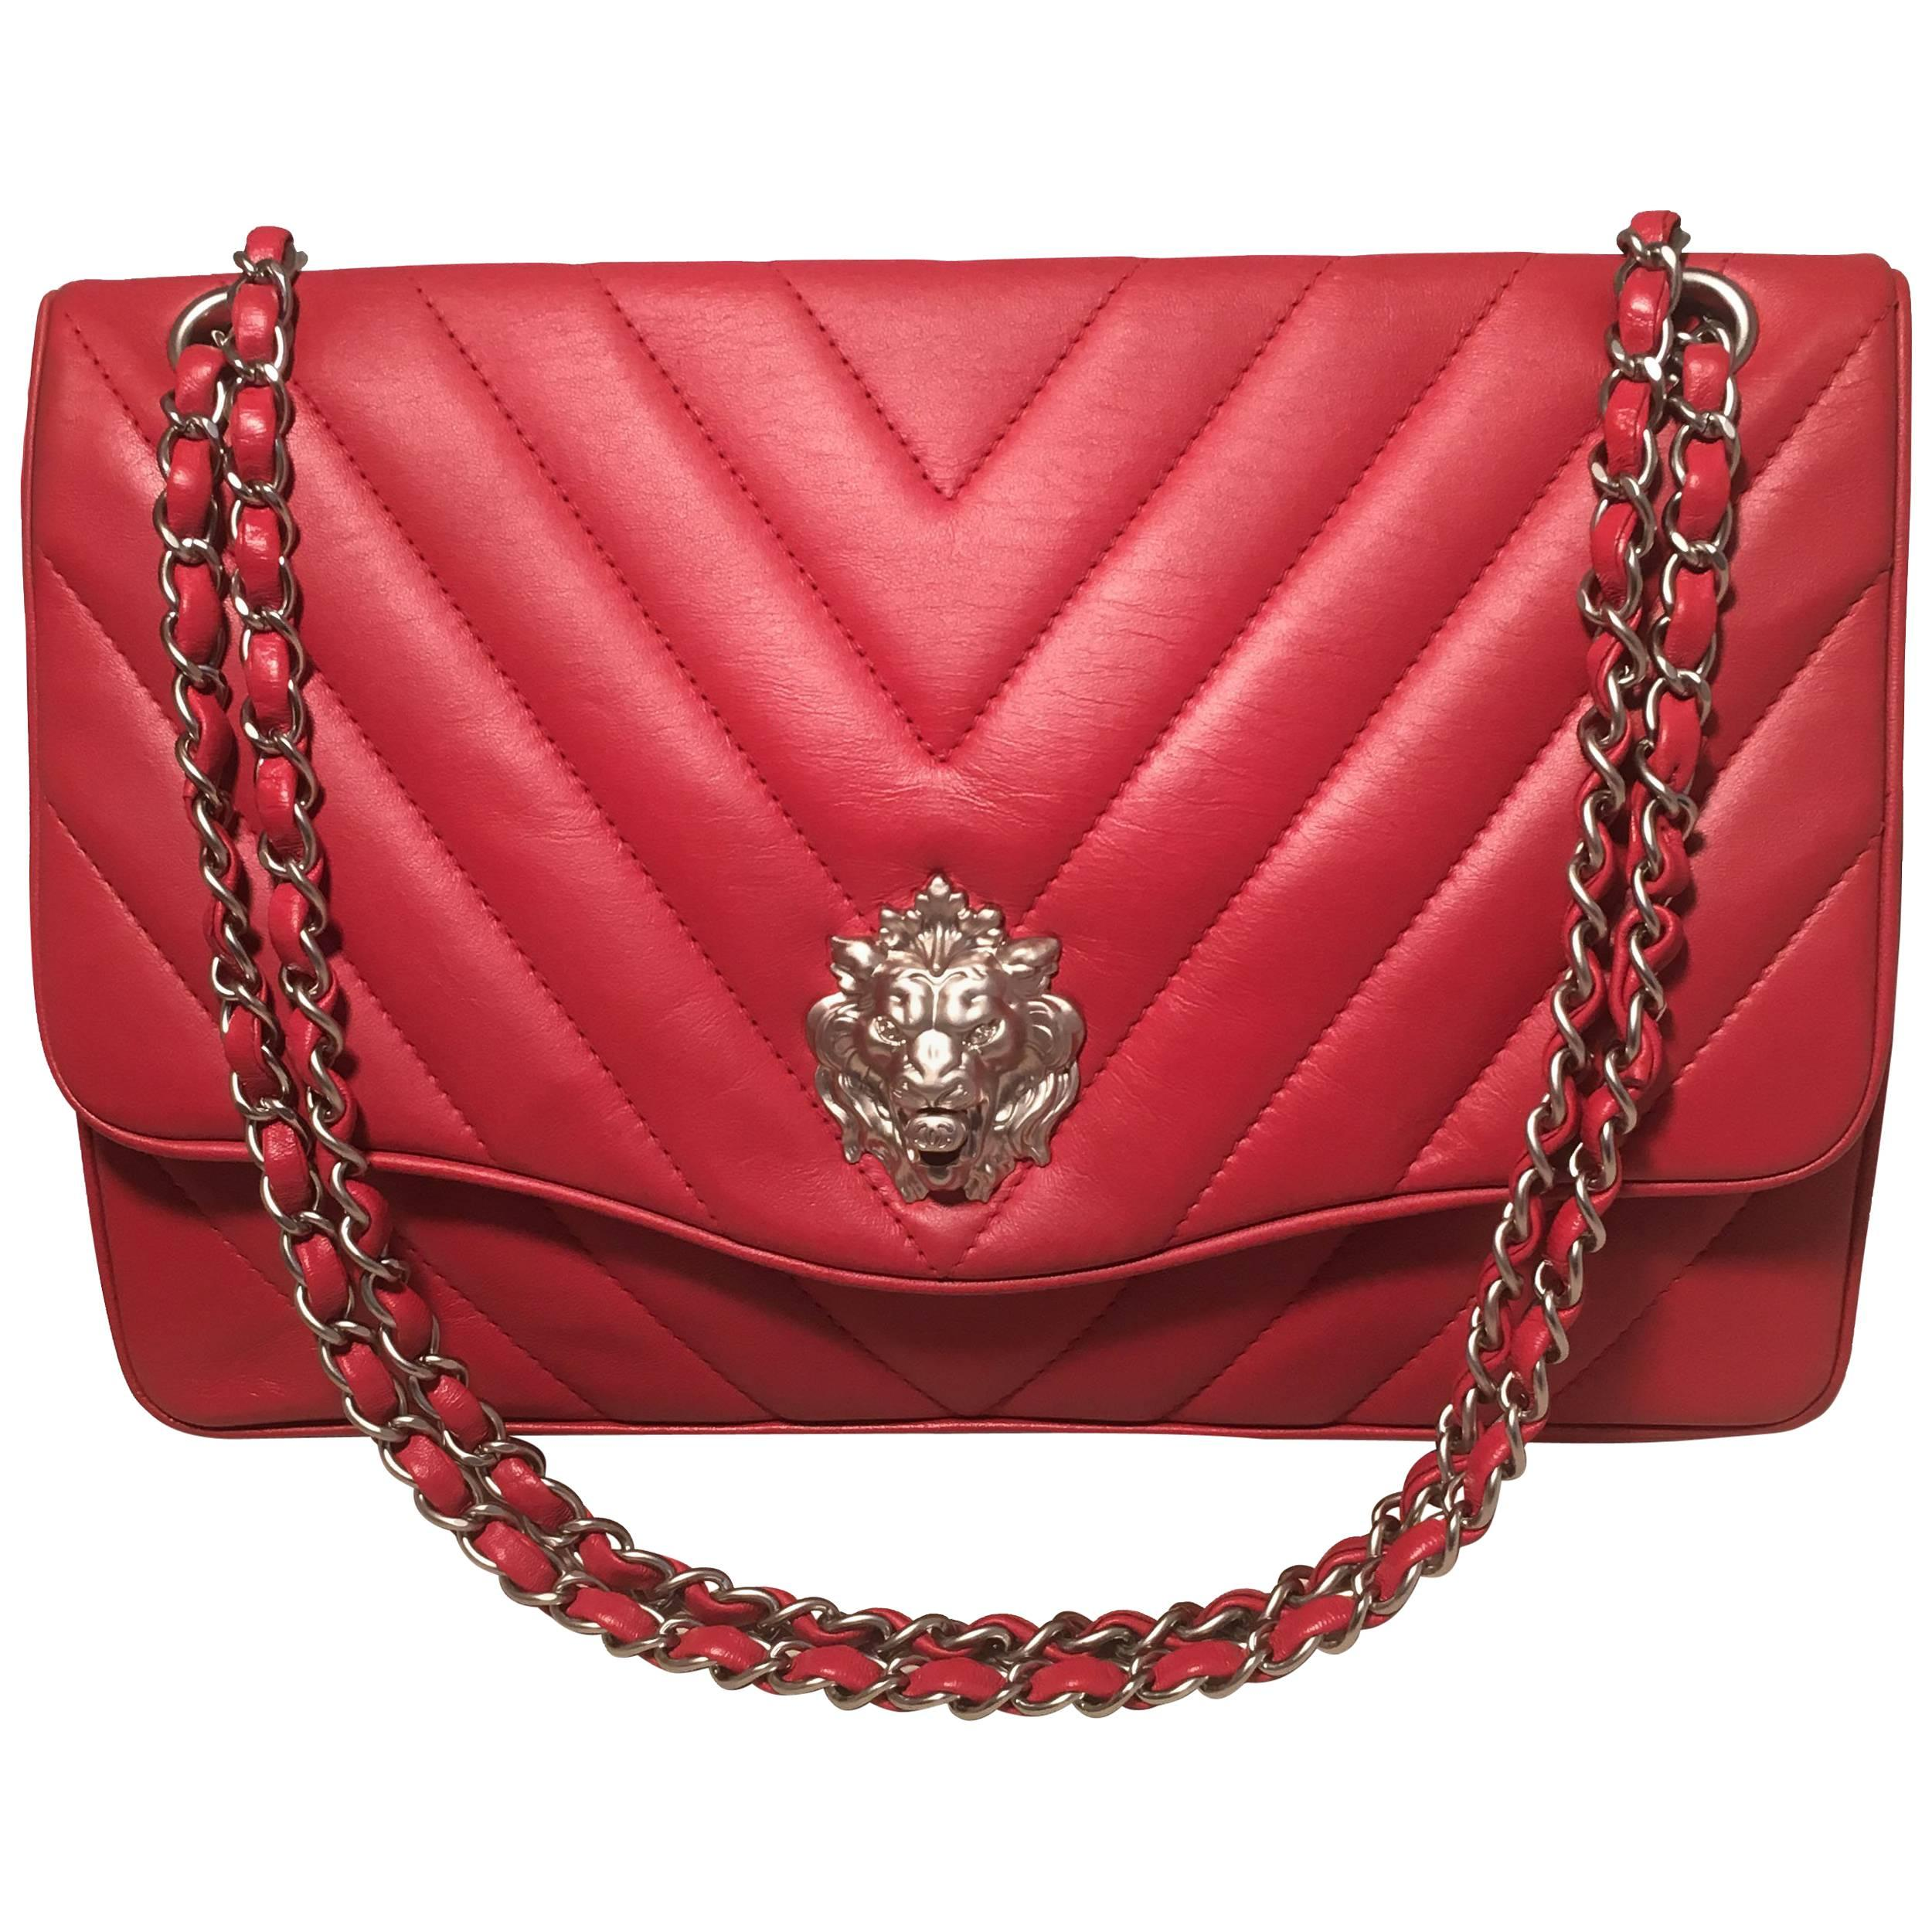 5e2c14444b4b Chanel Red Calfskin 2.55 Reissue Flap Bag- 227 size For Sale at 1stdibs